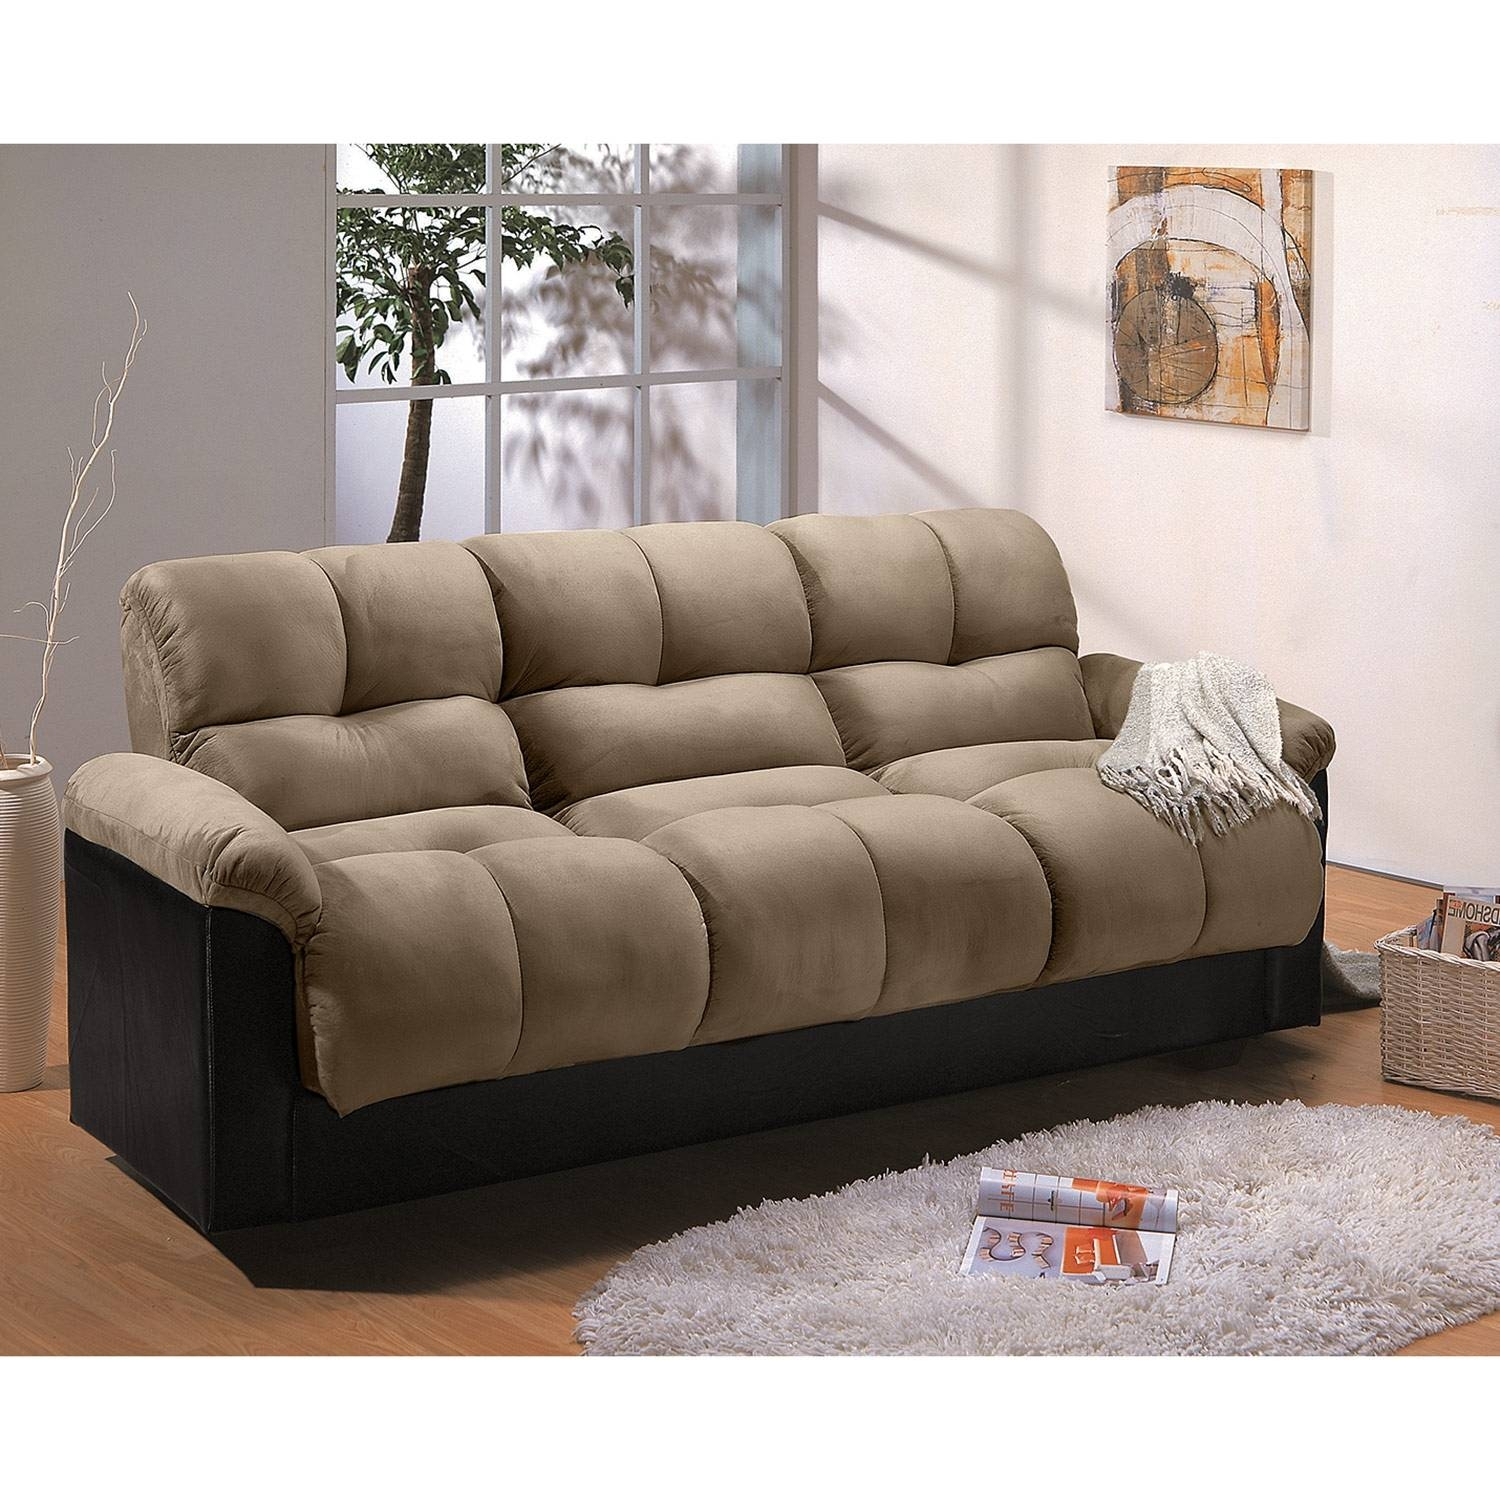 Furniture: Fill Your Living Room With Discount Sofas For Comfy for Discounted Sectional Sofa (Image 19 of 30)